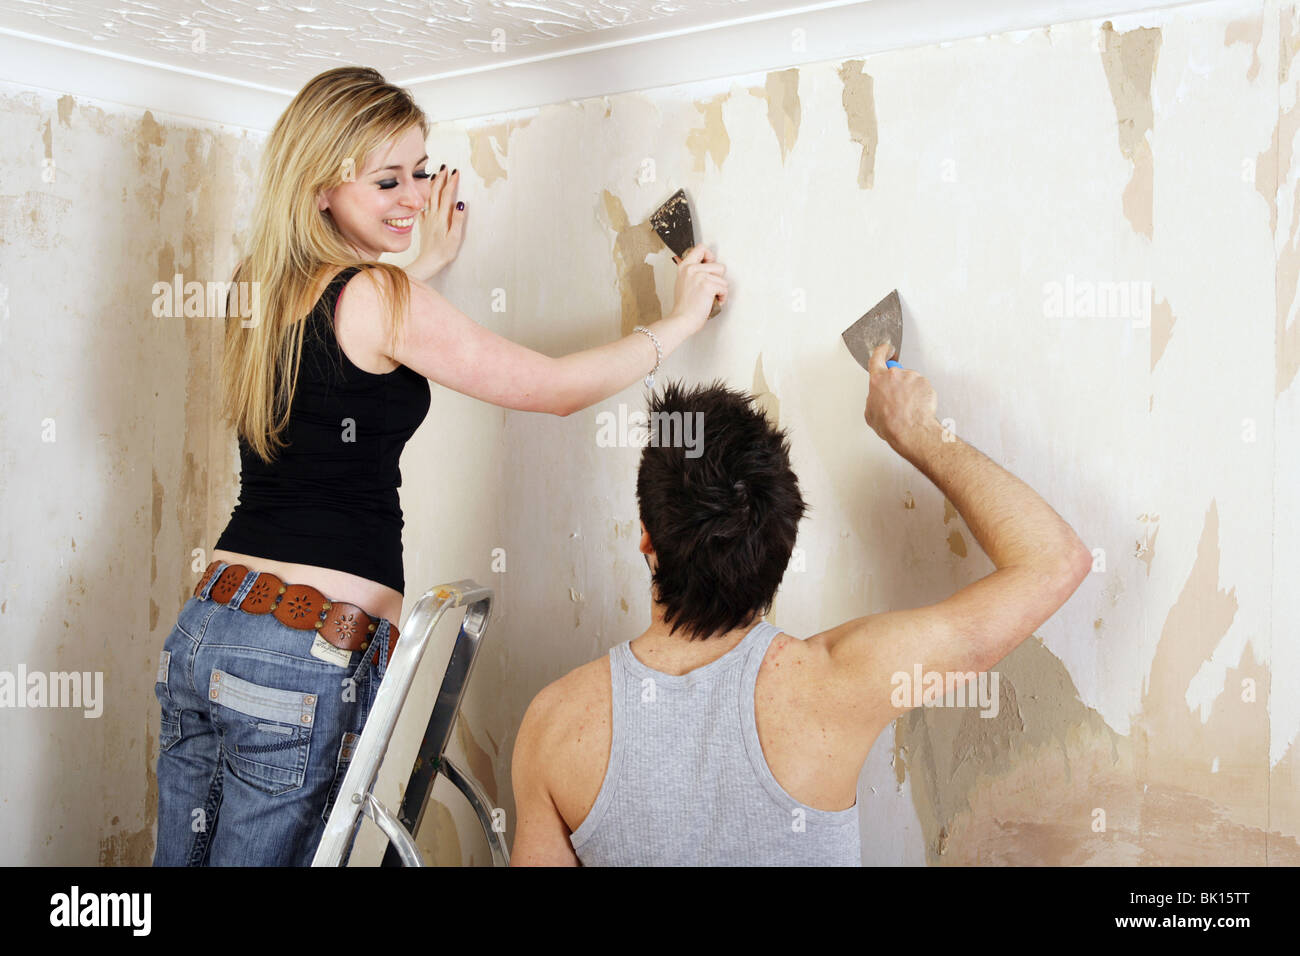 Stripping Wallpaper High Resolution Stock Photography And Images Alamy